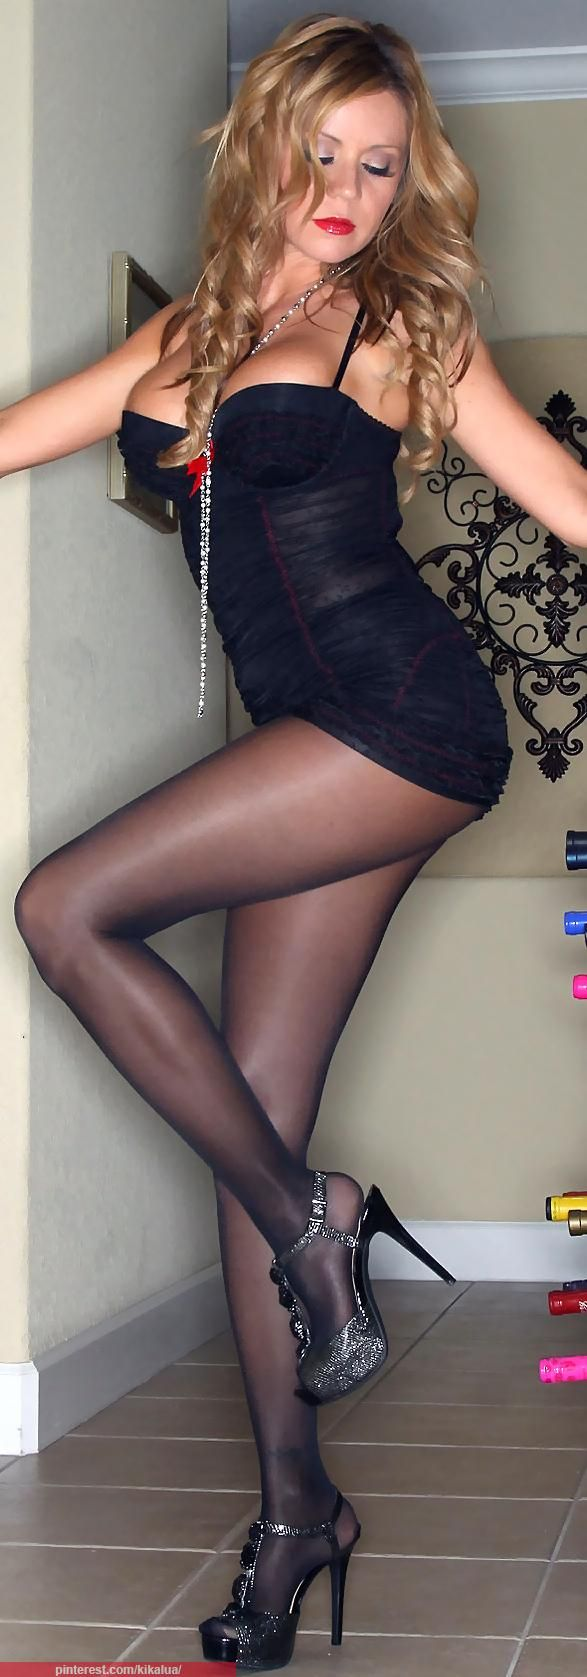 Gorgeous Pantyhose Sexual Pantyhose In